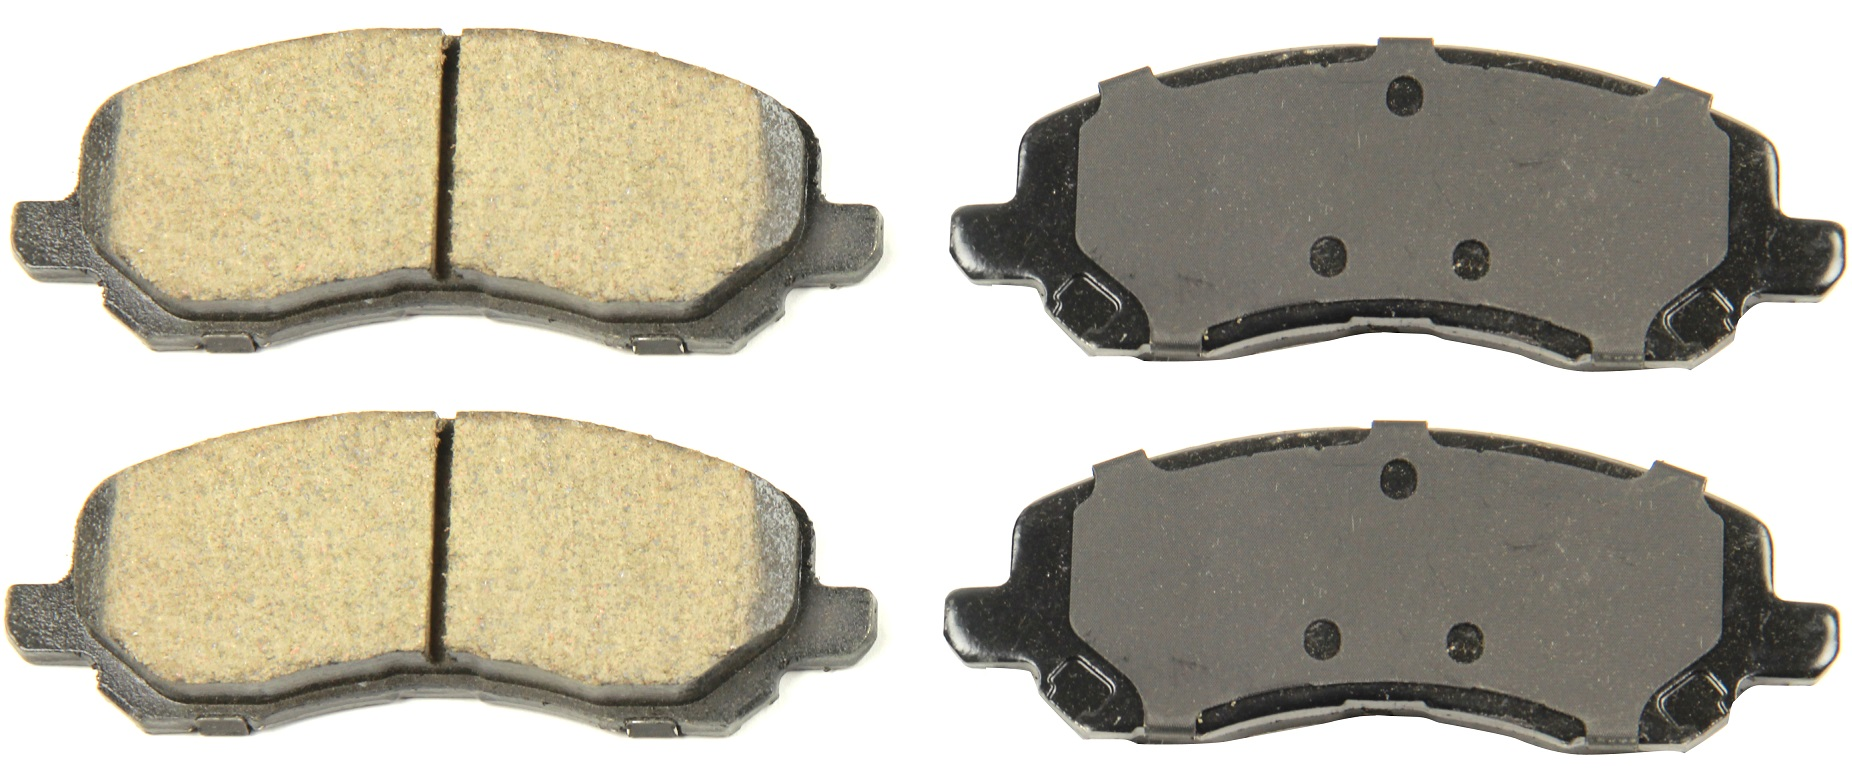 07-14 MK Compass & Patriot Front Brake Pads